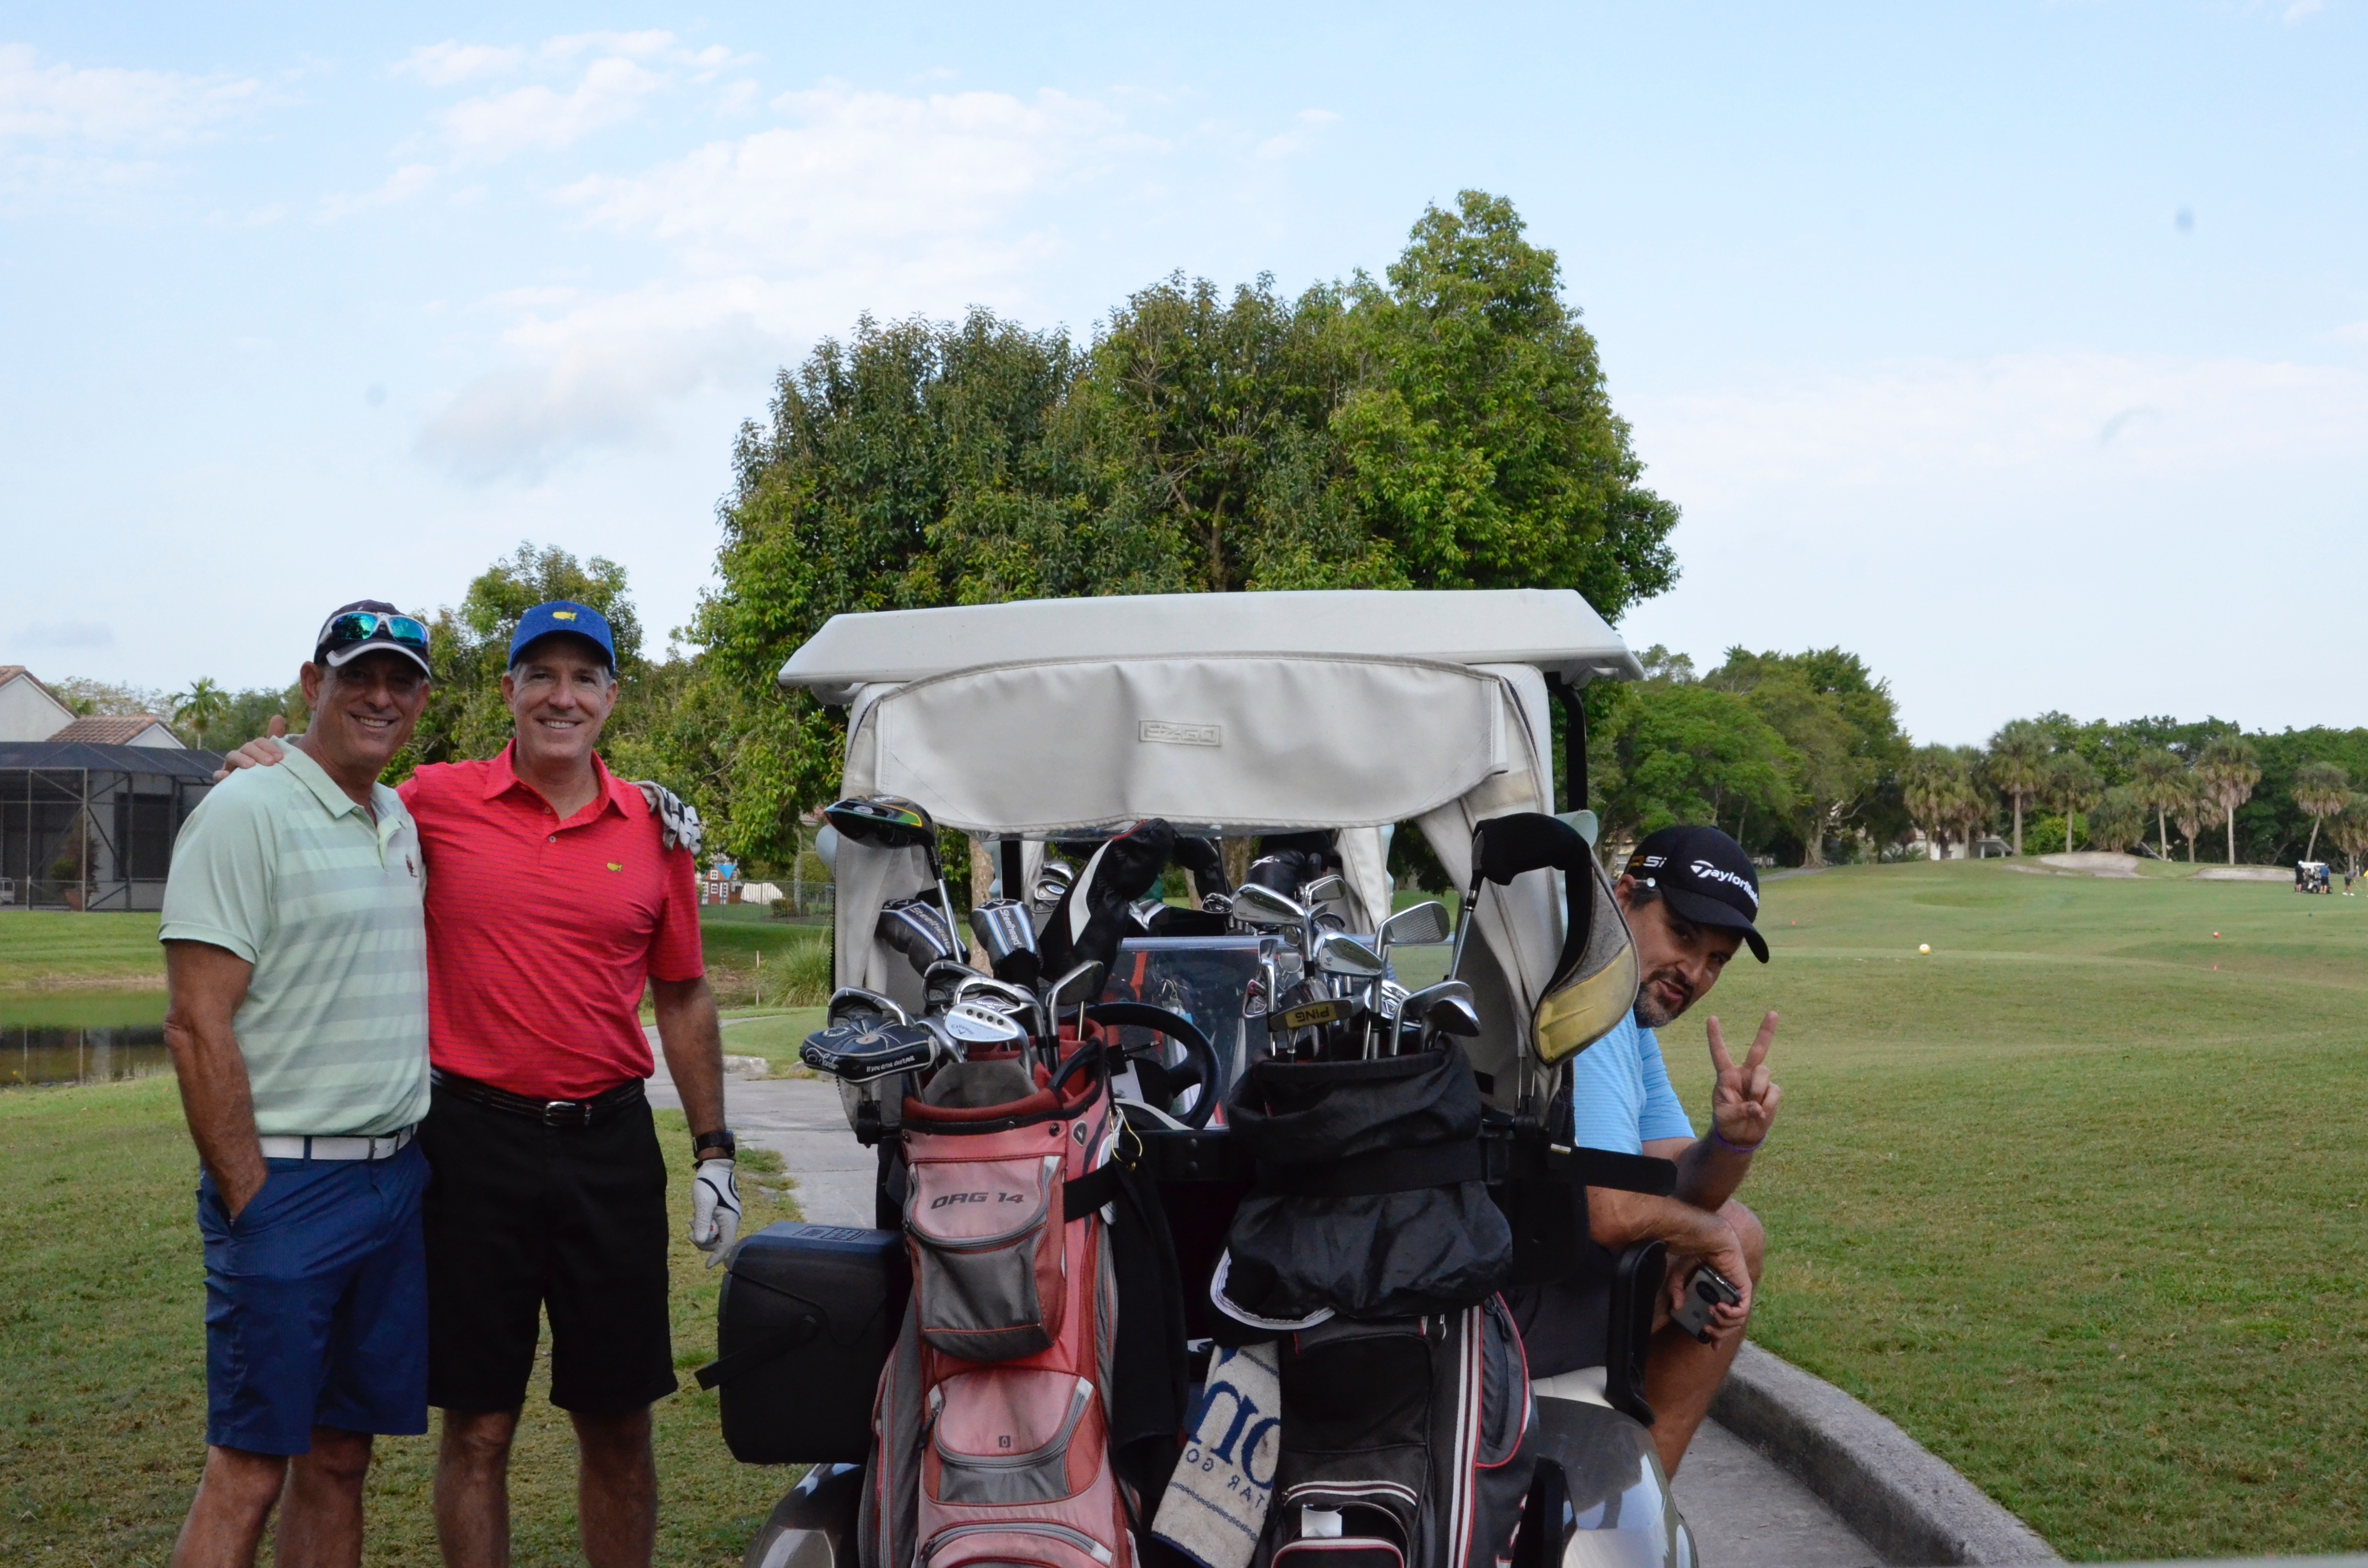 33rd Annual Rotary Golf Classic Sponsored by FHVLEGAL.COM gallery image #88